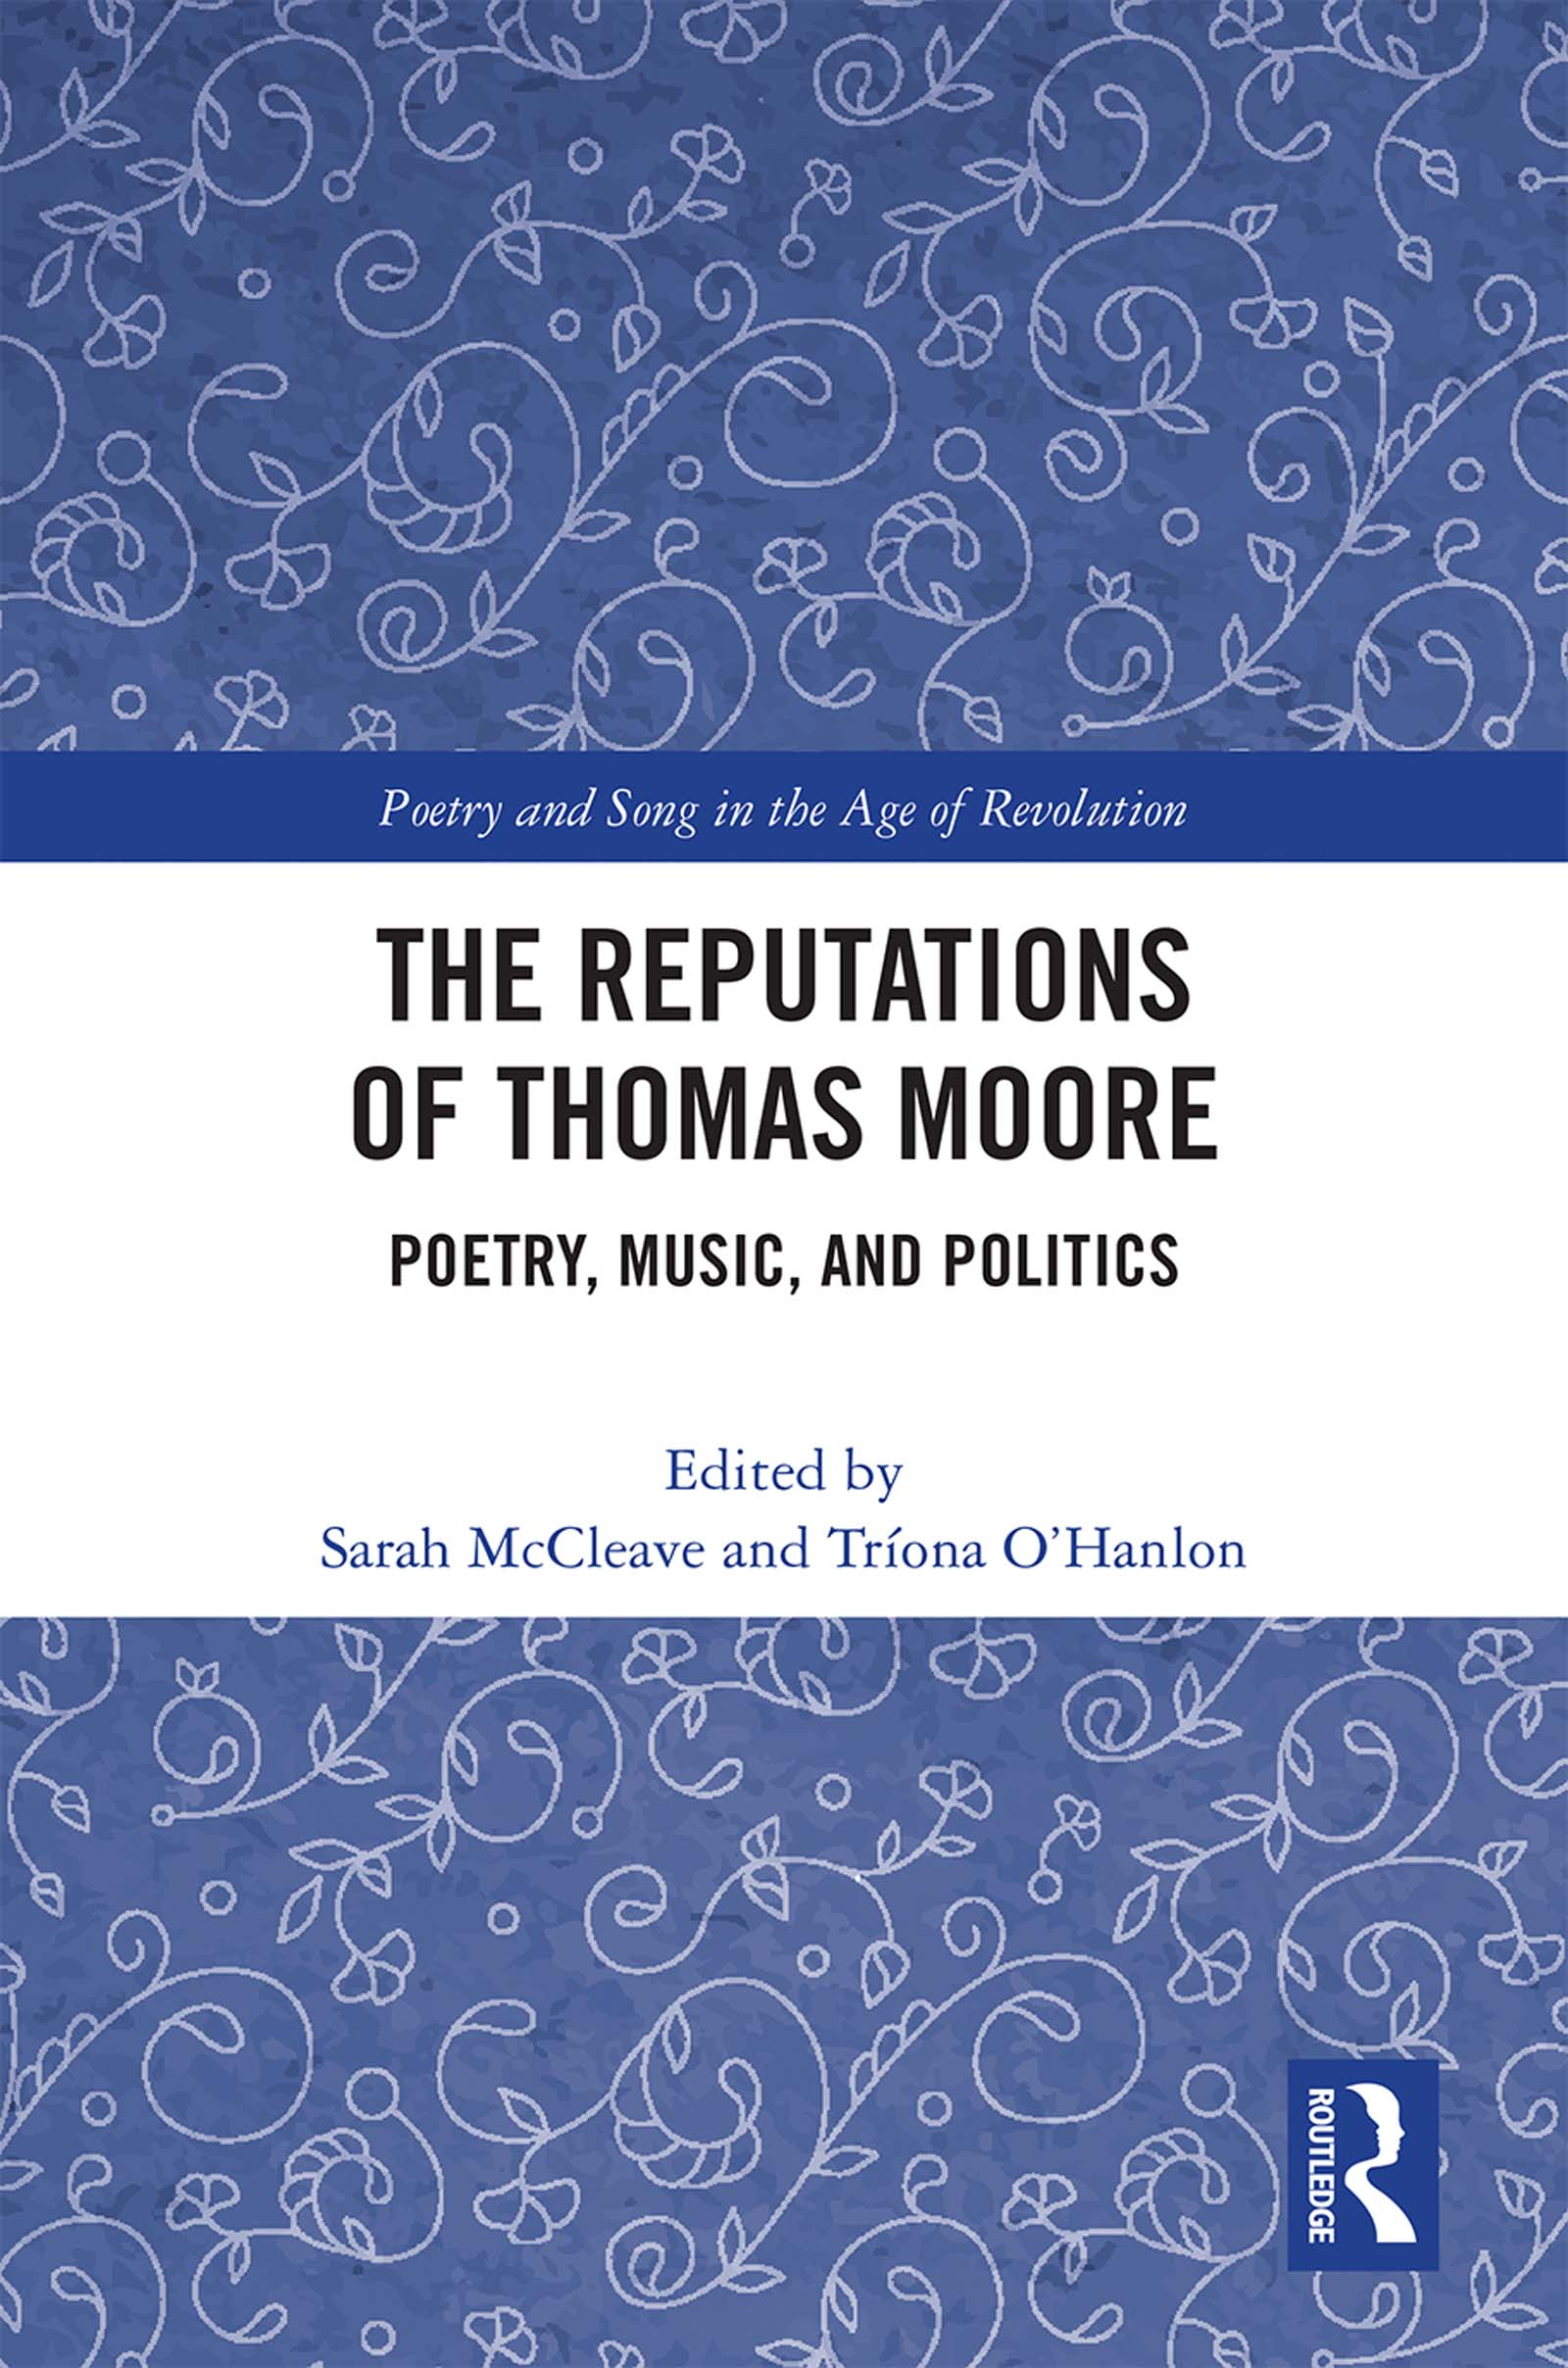 The Reputations of Thomas Moore: Poetry, Music, and Politics book cover